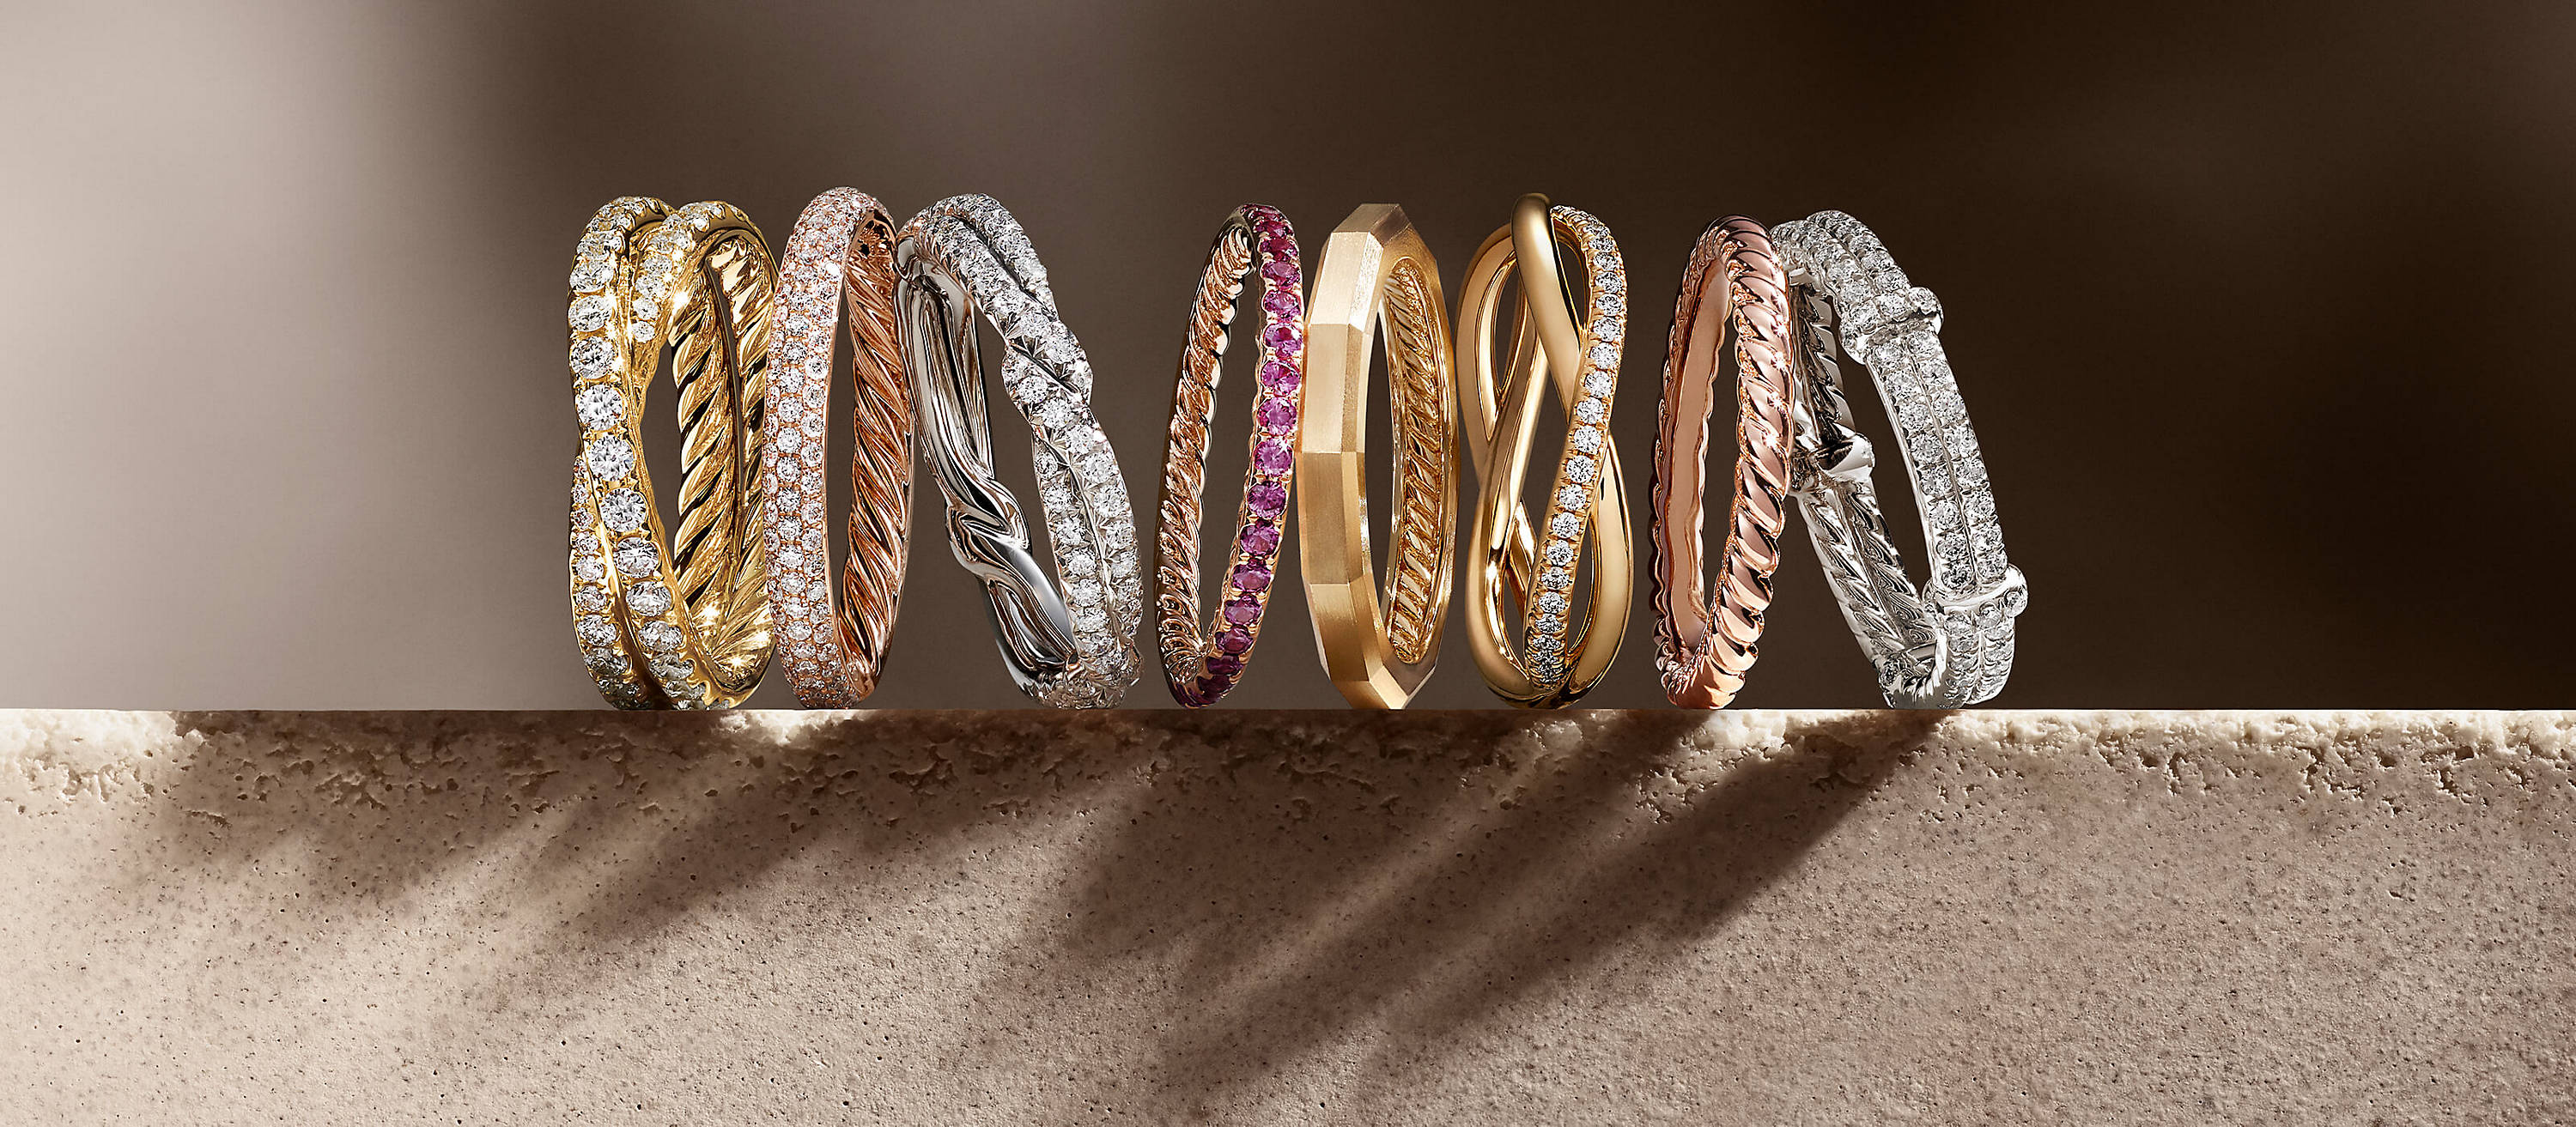 David Yurman DY Crossover, DY Eden, DY Wisteria, DY Delaunay, DY Lanai, DY Unity and DY Astor band rings, in 18K yellow or rose gold or platinum with or without diamonds or pink sapphires, in a horizontal stack on a sandstone block casting long shadows.